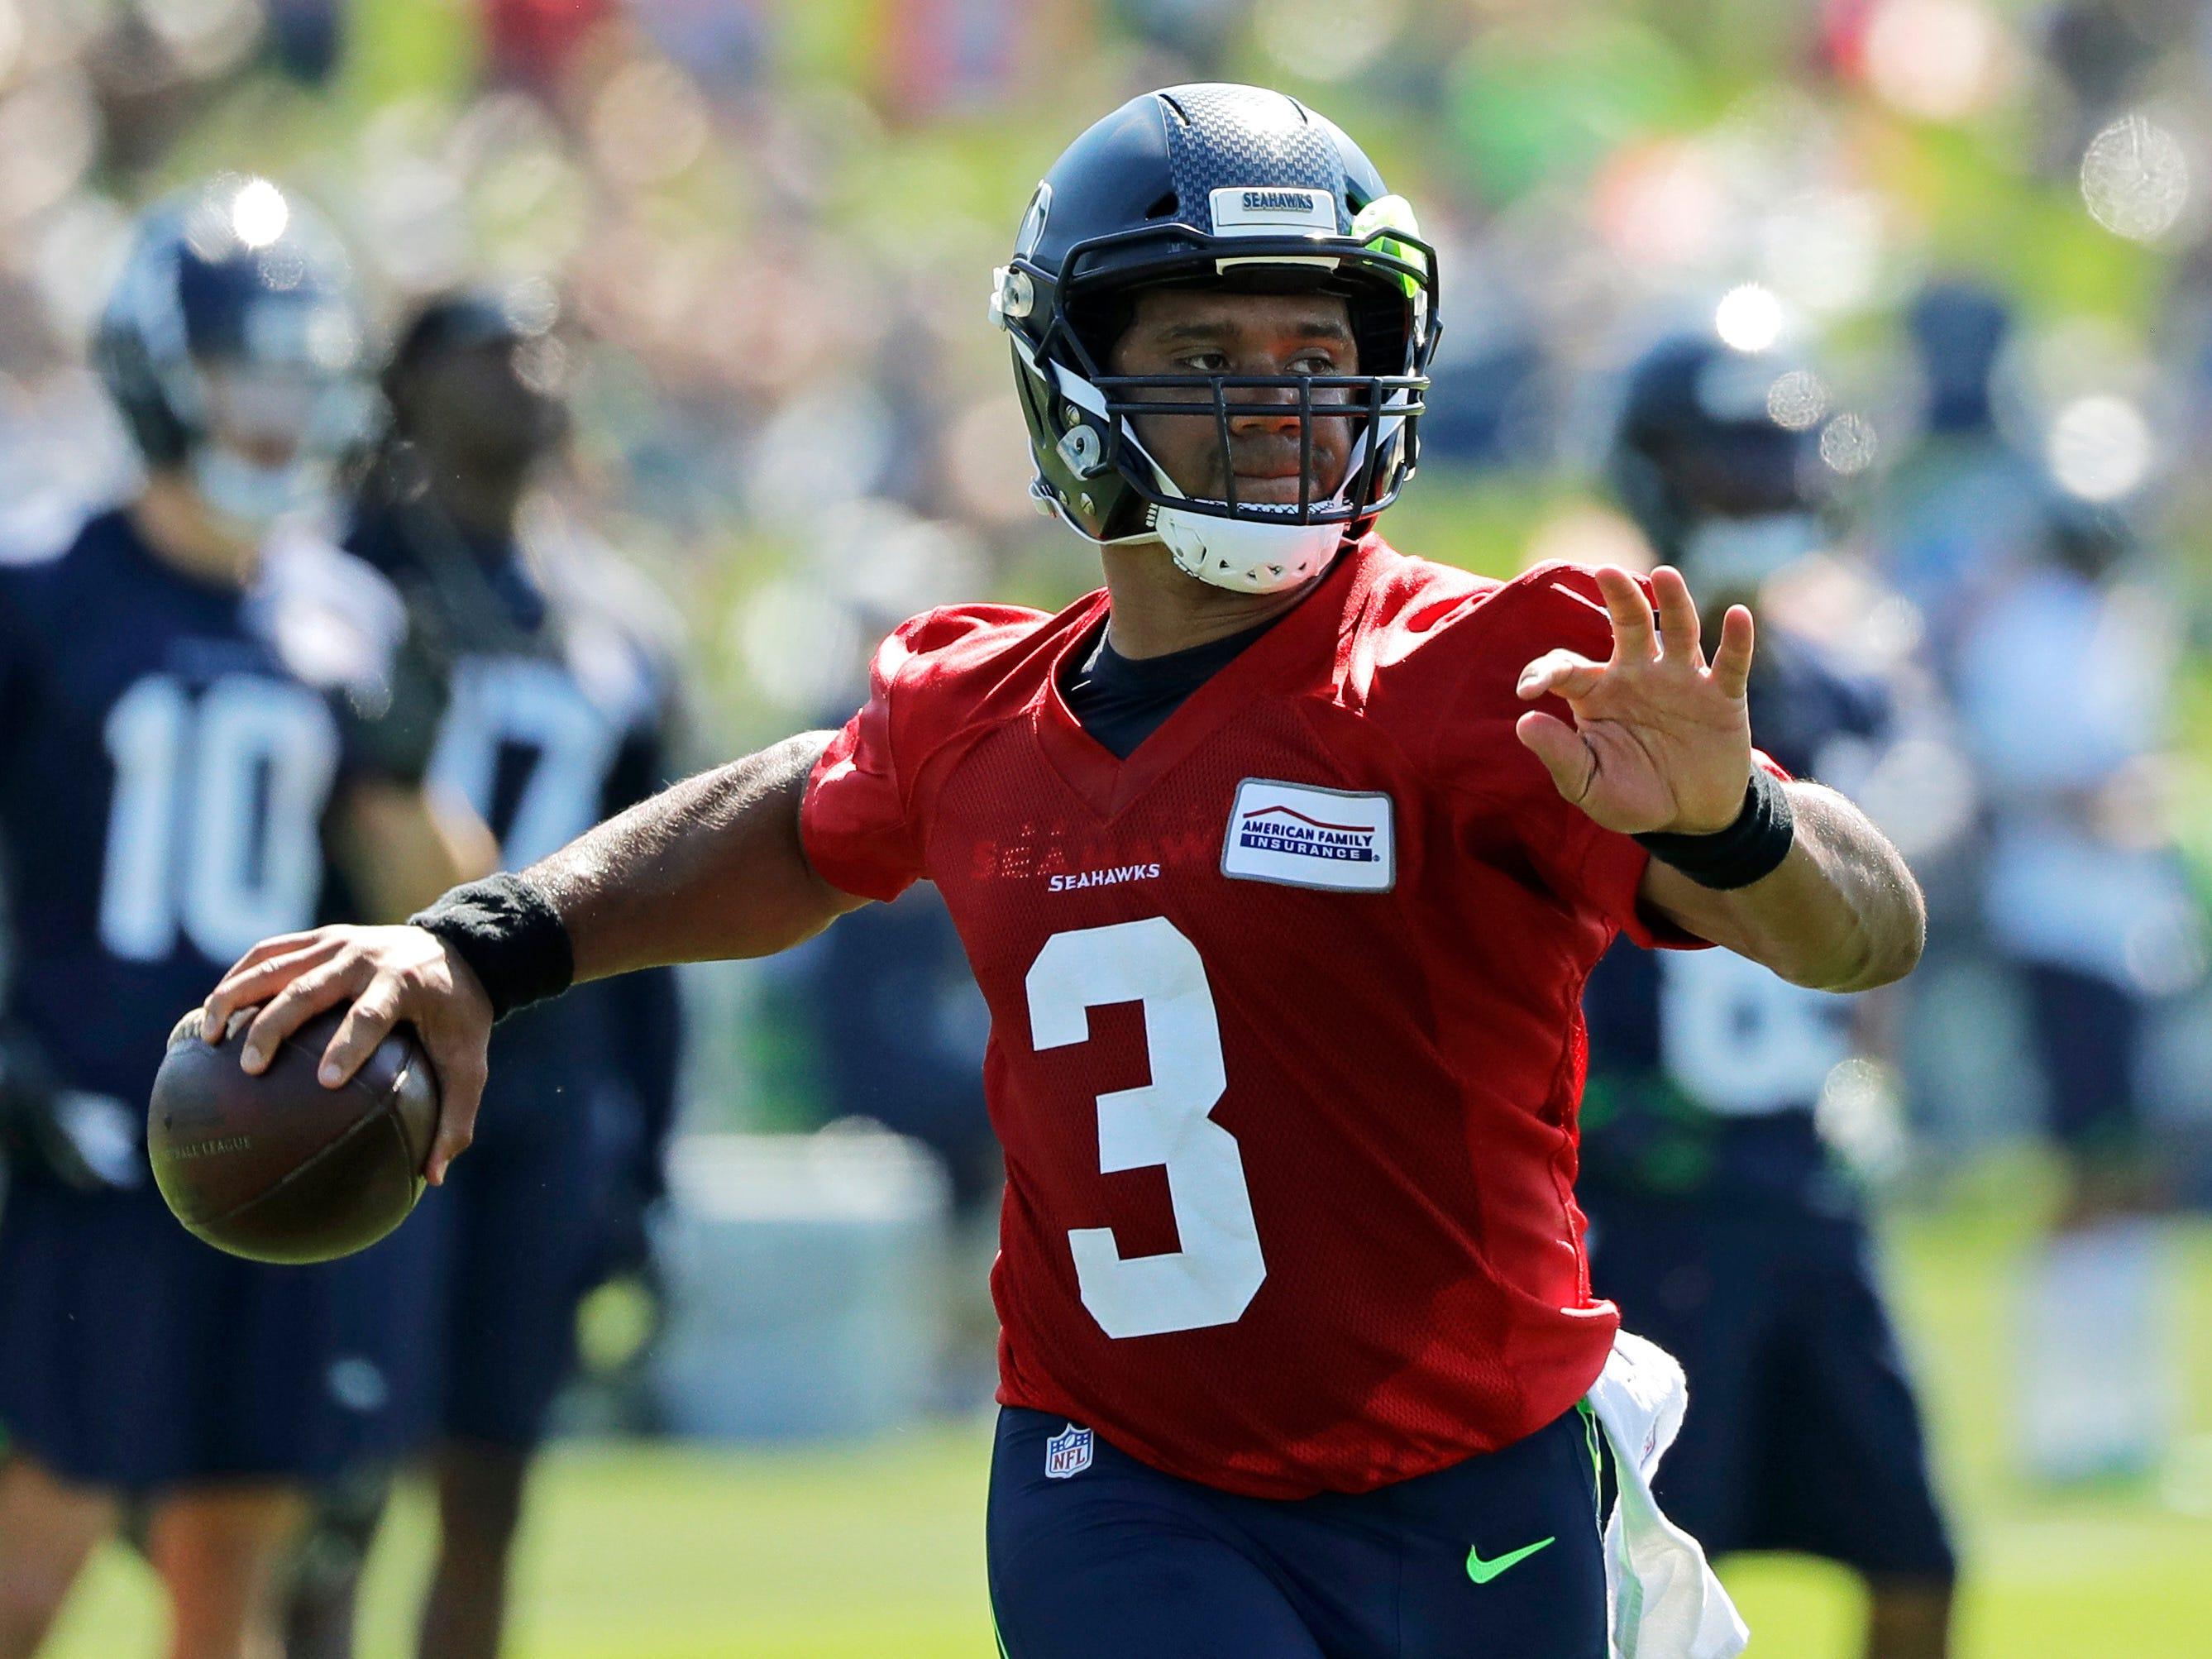 Seattle Seahawks quarterback Russell Wilson (3) passes during NFL football training camp, Thursday, July 26, 2018, in Renton, Wash. (AP Photo/Ted S. Warren)